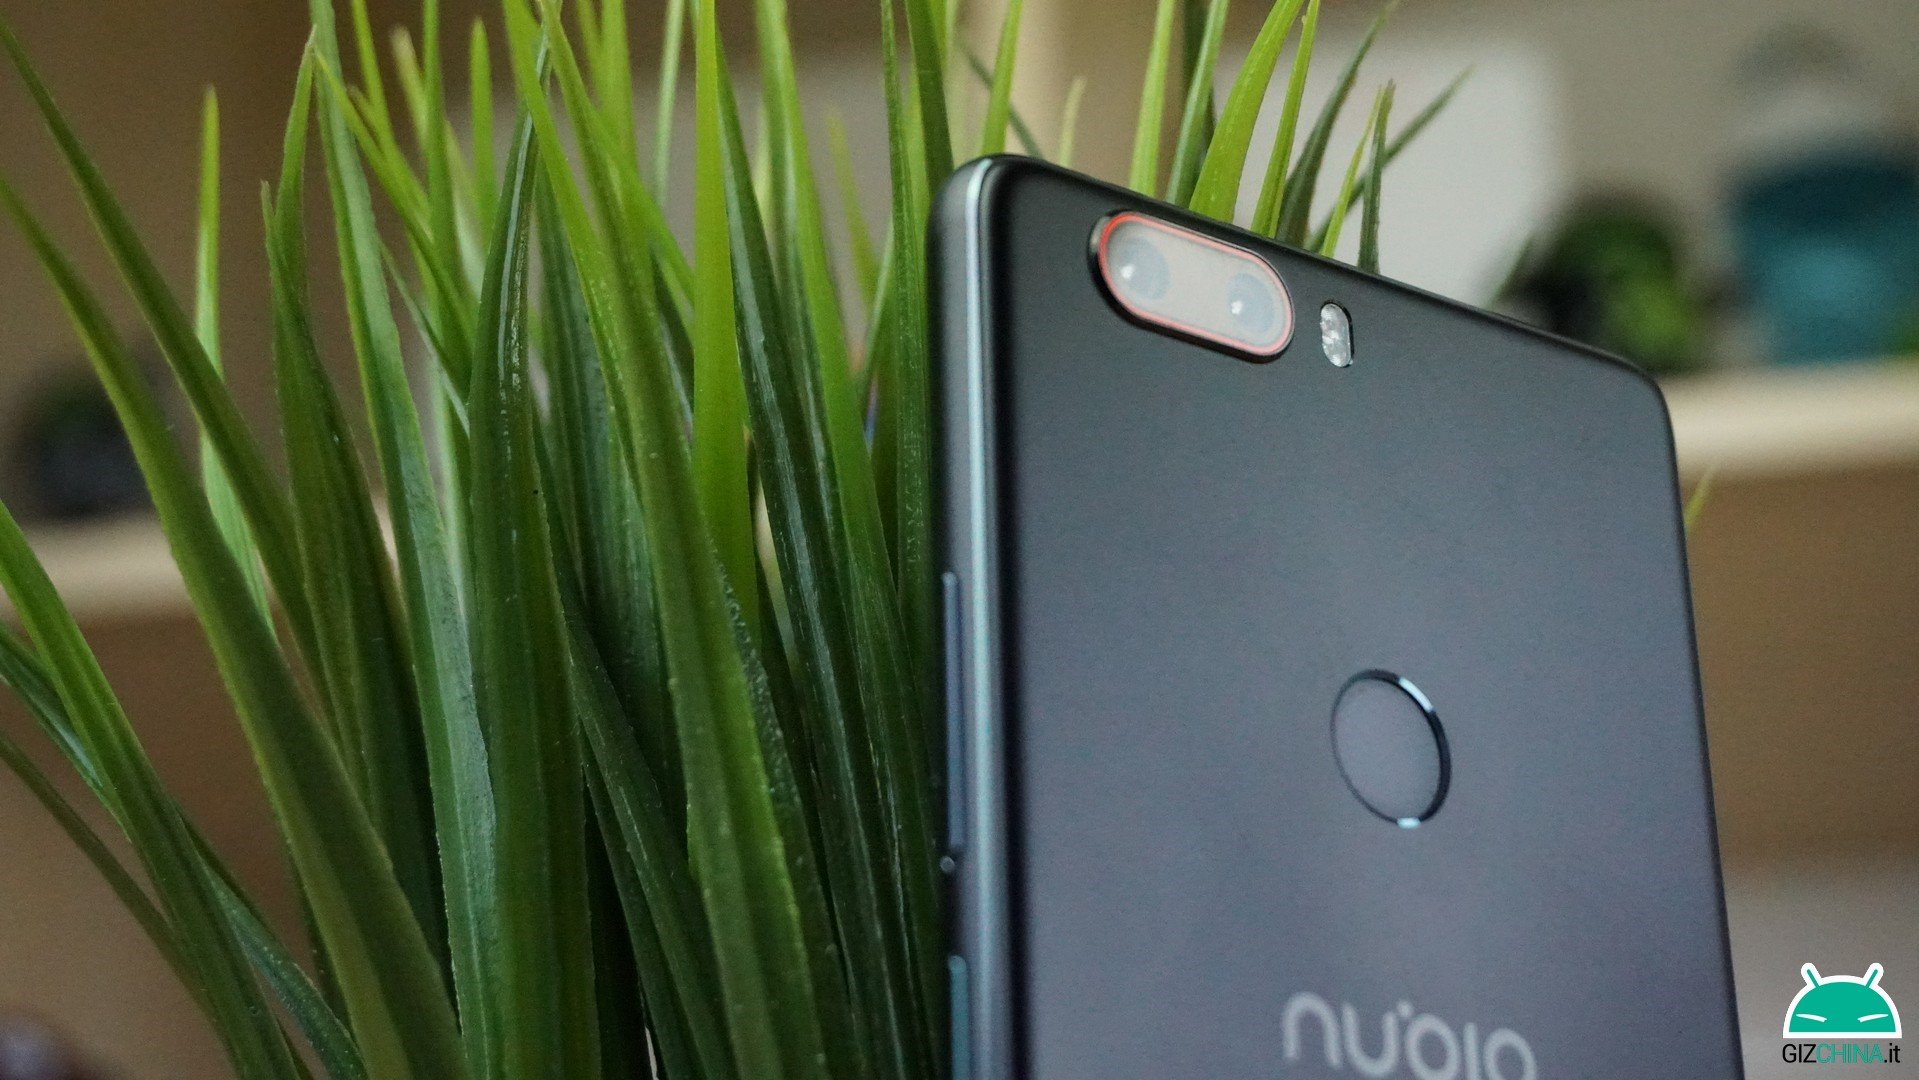 Nubia Z17: the update to Android 8 1 Oreo is coming soon